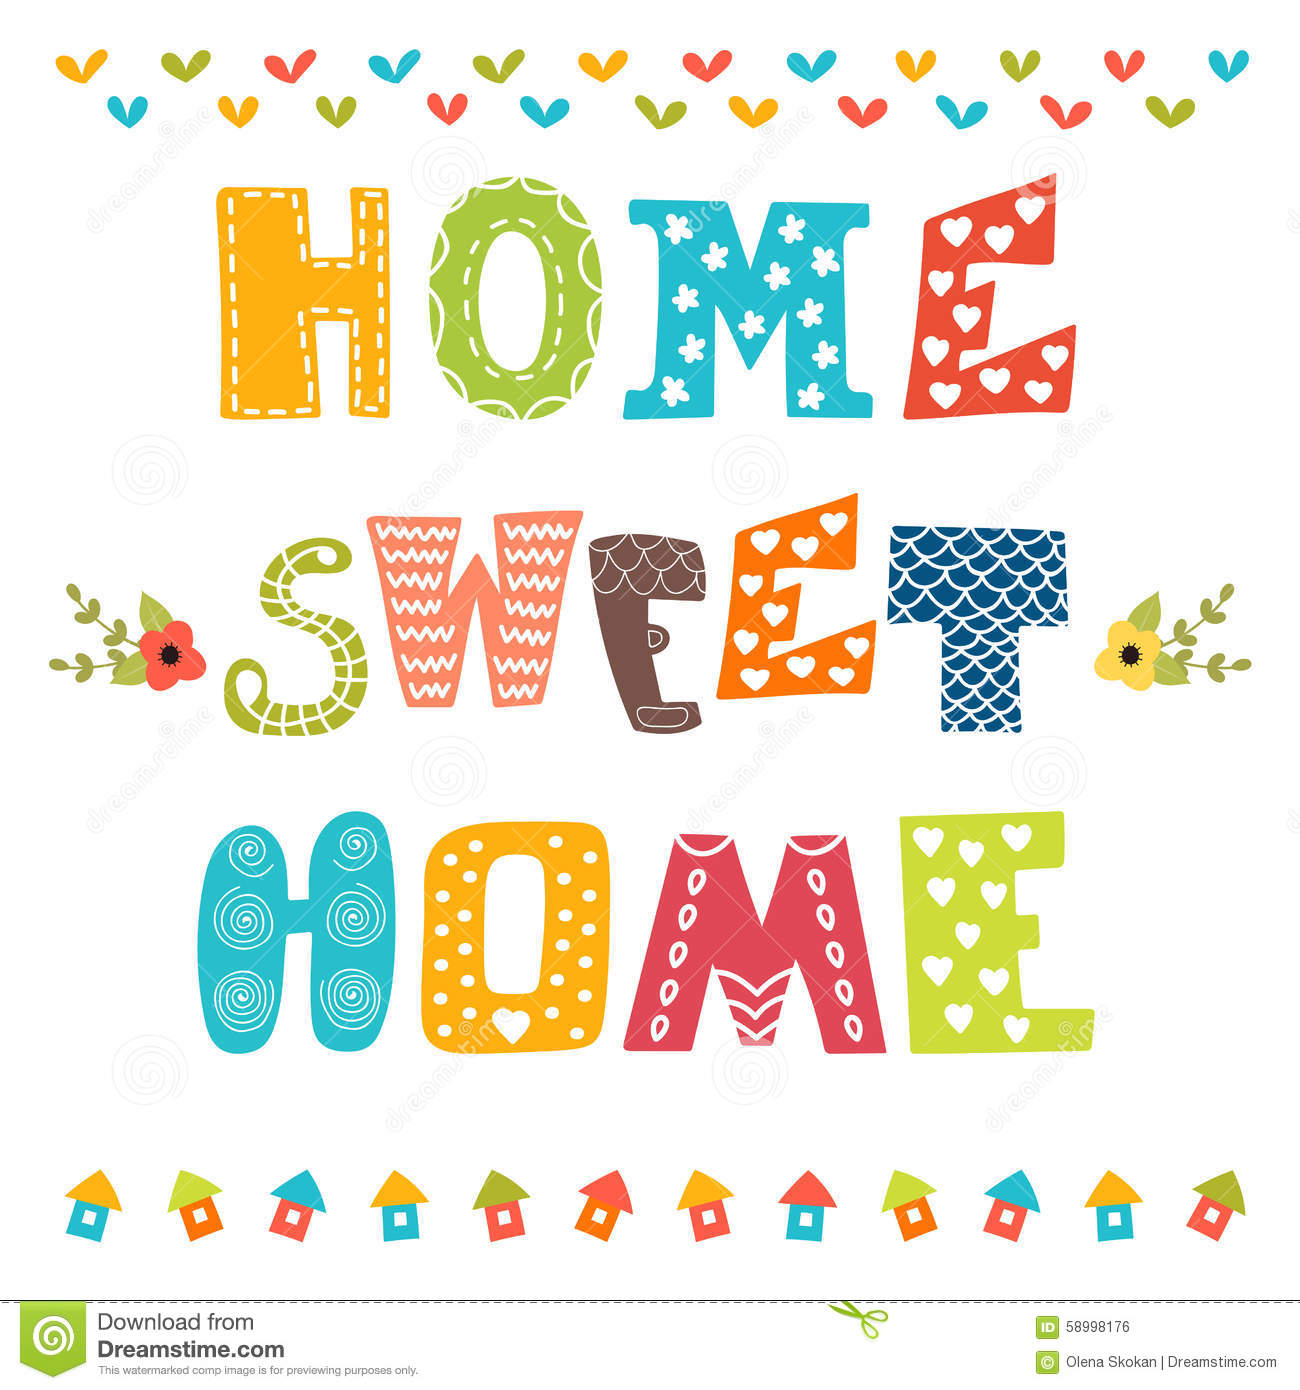 Home sweet home clipart free clipart royalty free download Home Sweet Home Stock Illustrations – 8,813 Home Sweet Home Stock ... clipart royalty free download